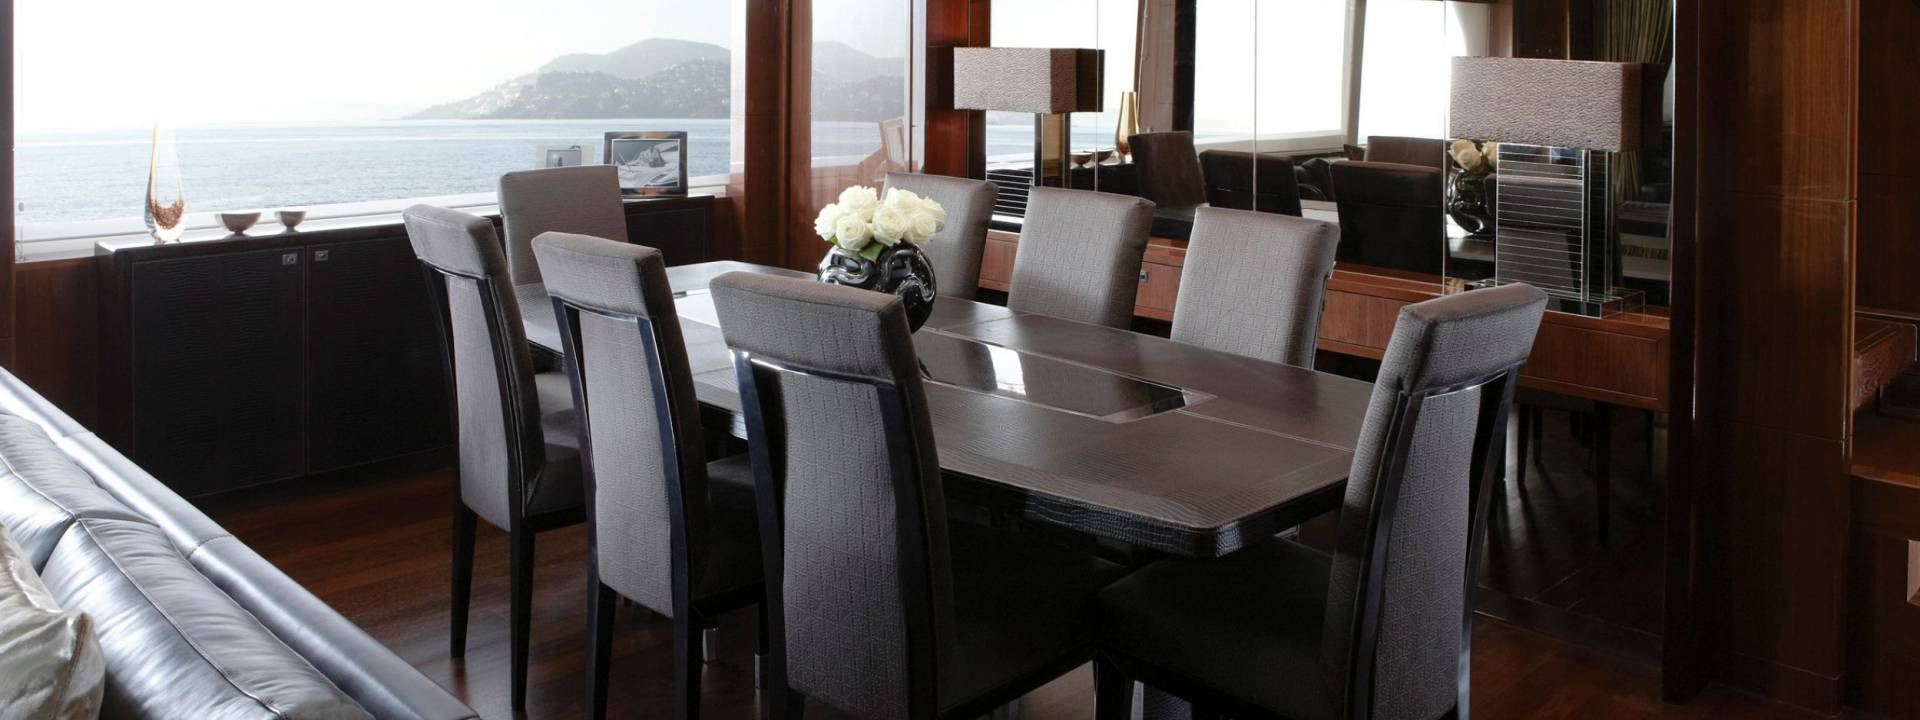 Luxury Yacht Dining Room, Yvette Taylor London